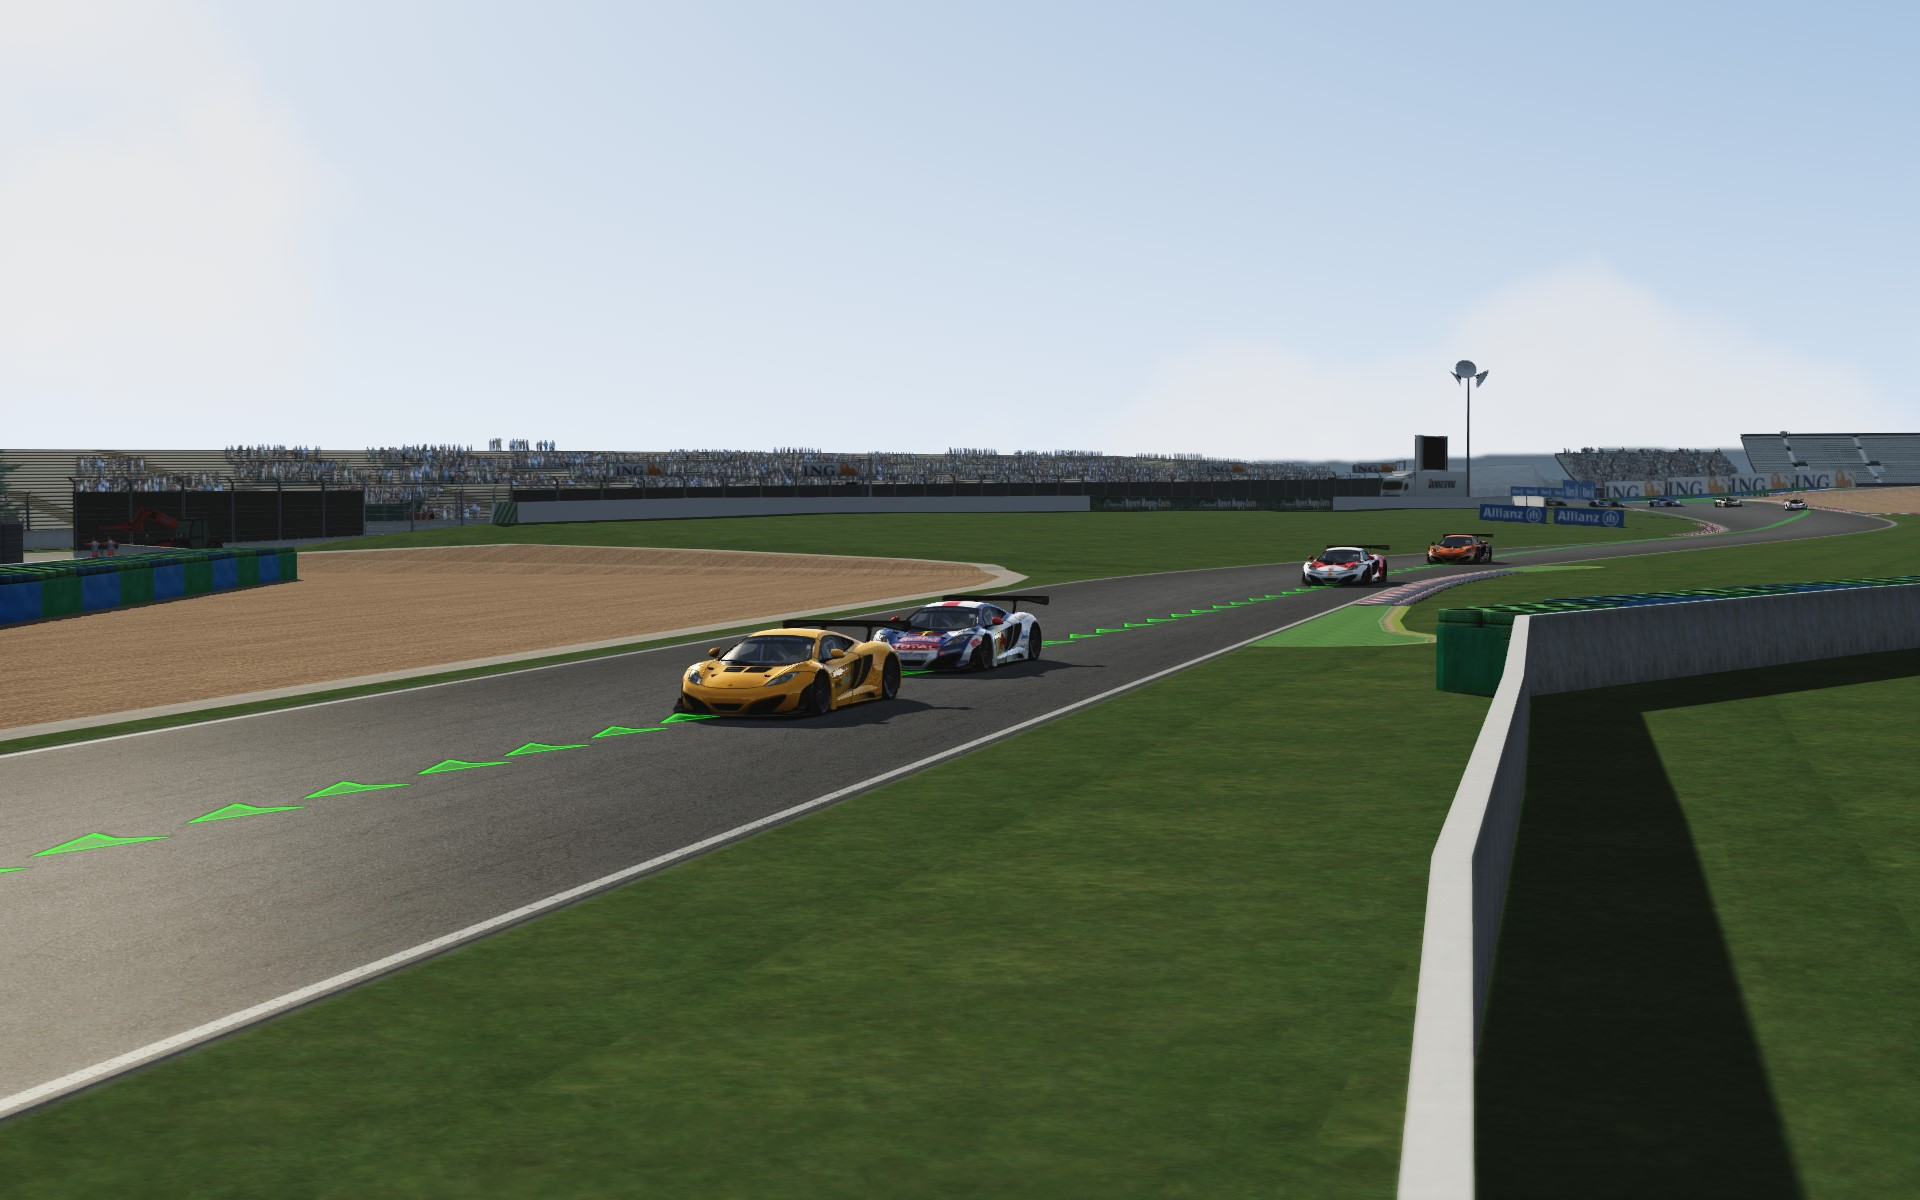 Screenshot_mclaren_mp412c_gt3_magny_cours_0_1_26-7-115-15-25-35.jpg